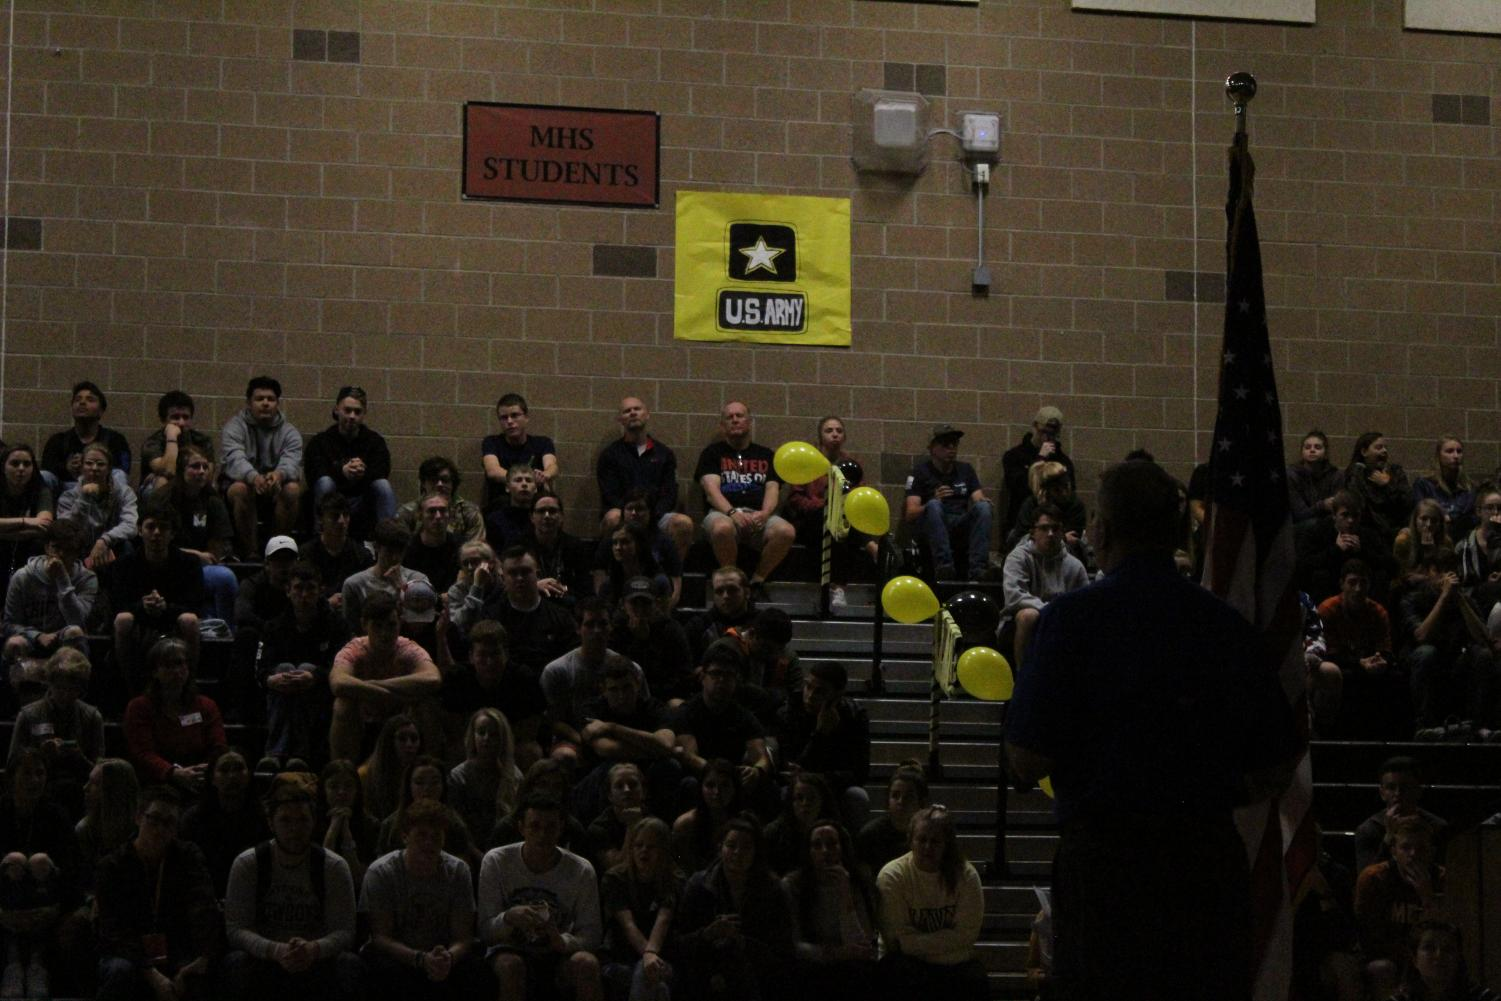 Seniors+were+chosen+to+honor+the+Army+in+the+assembly+today.